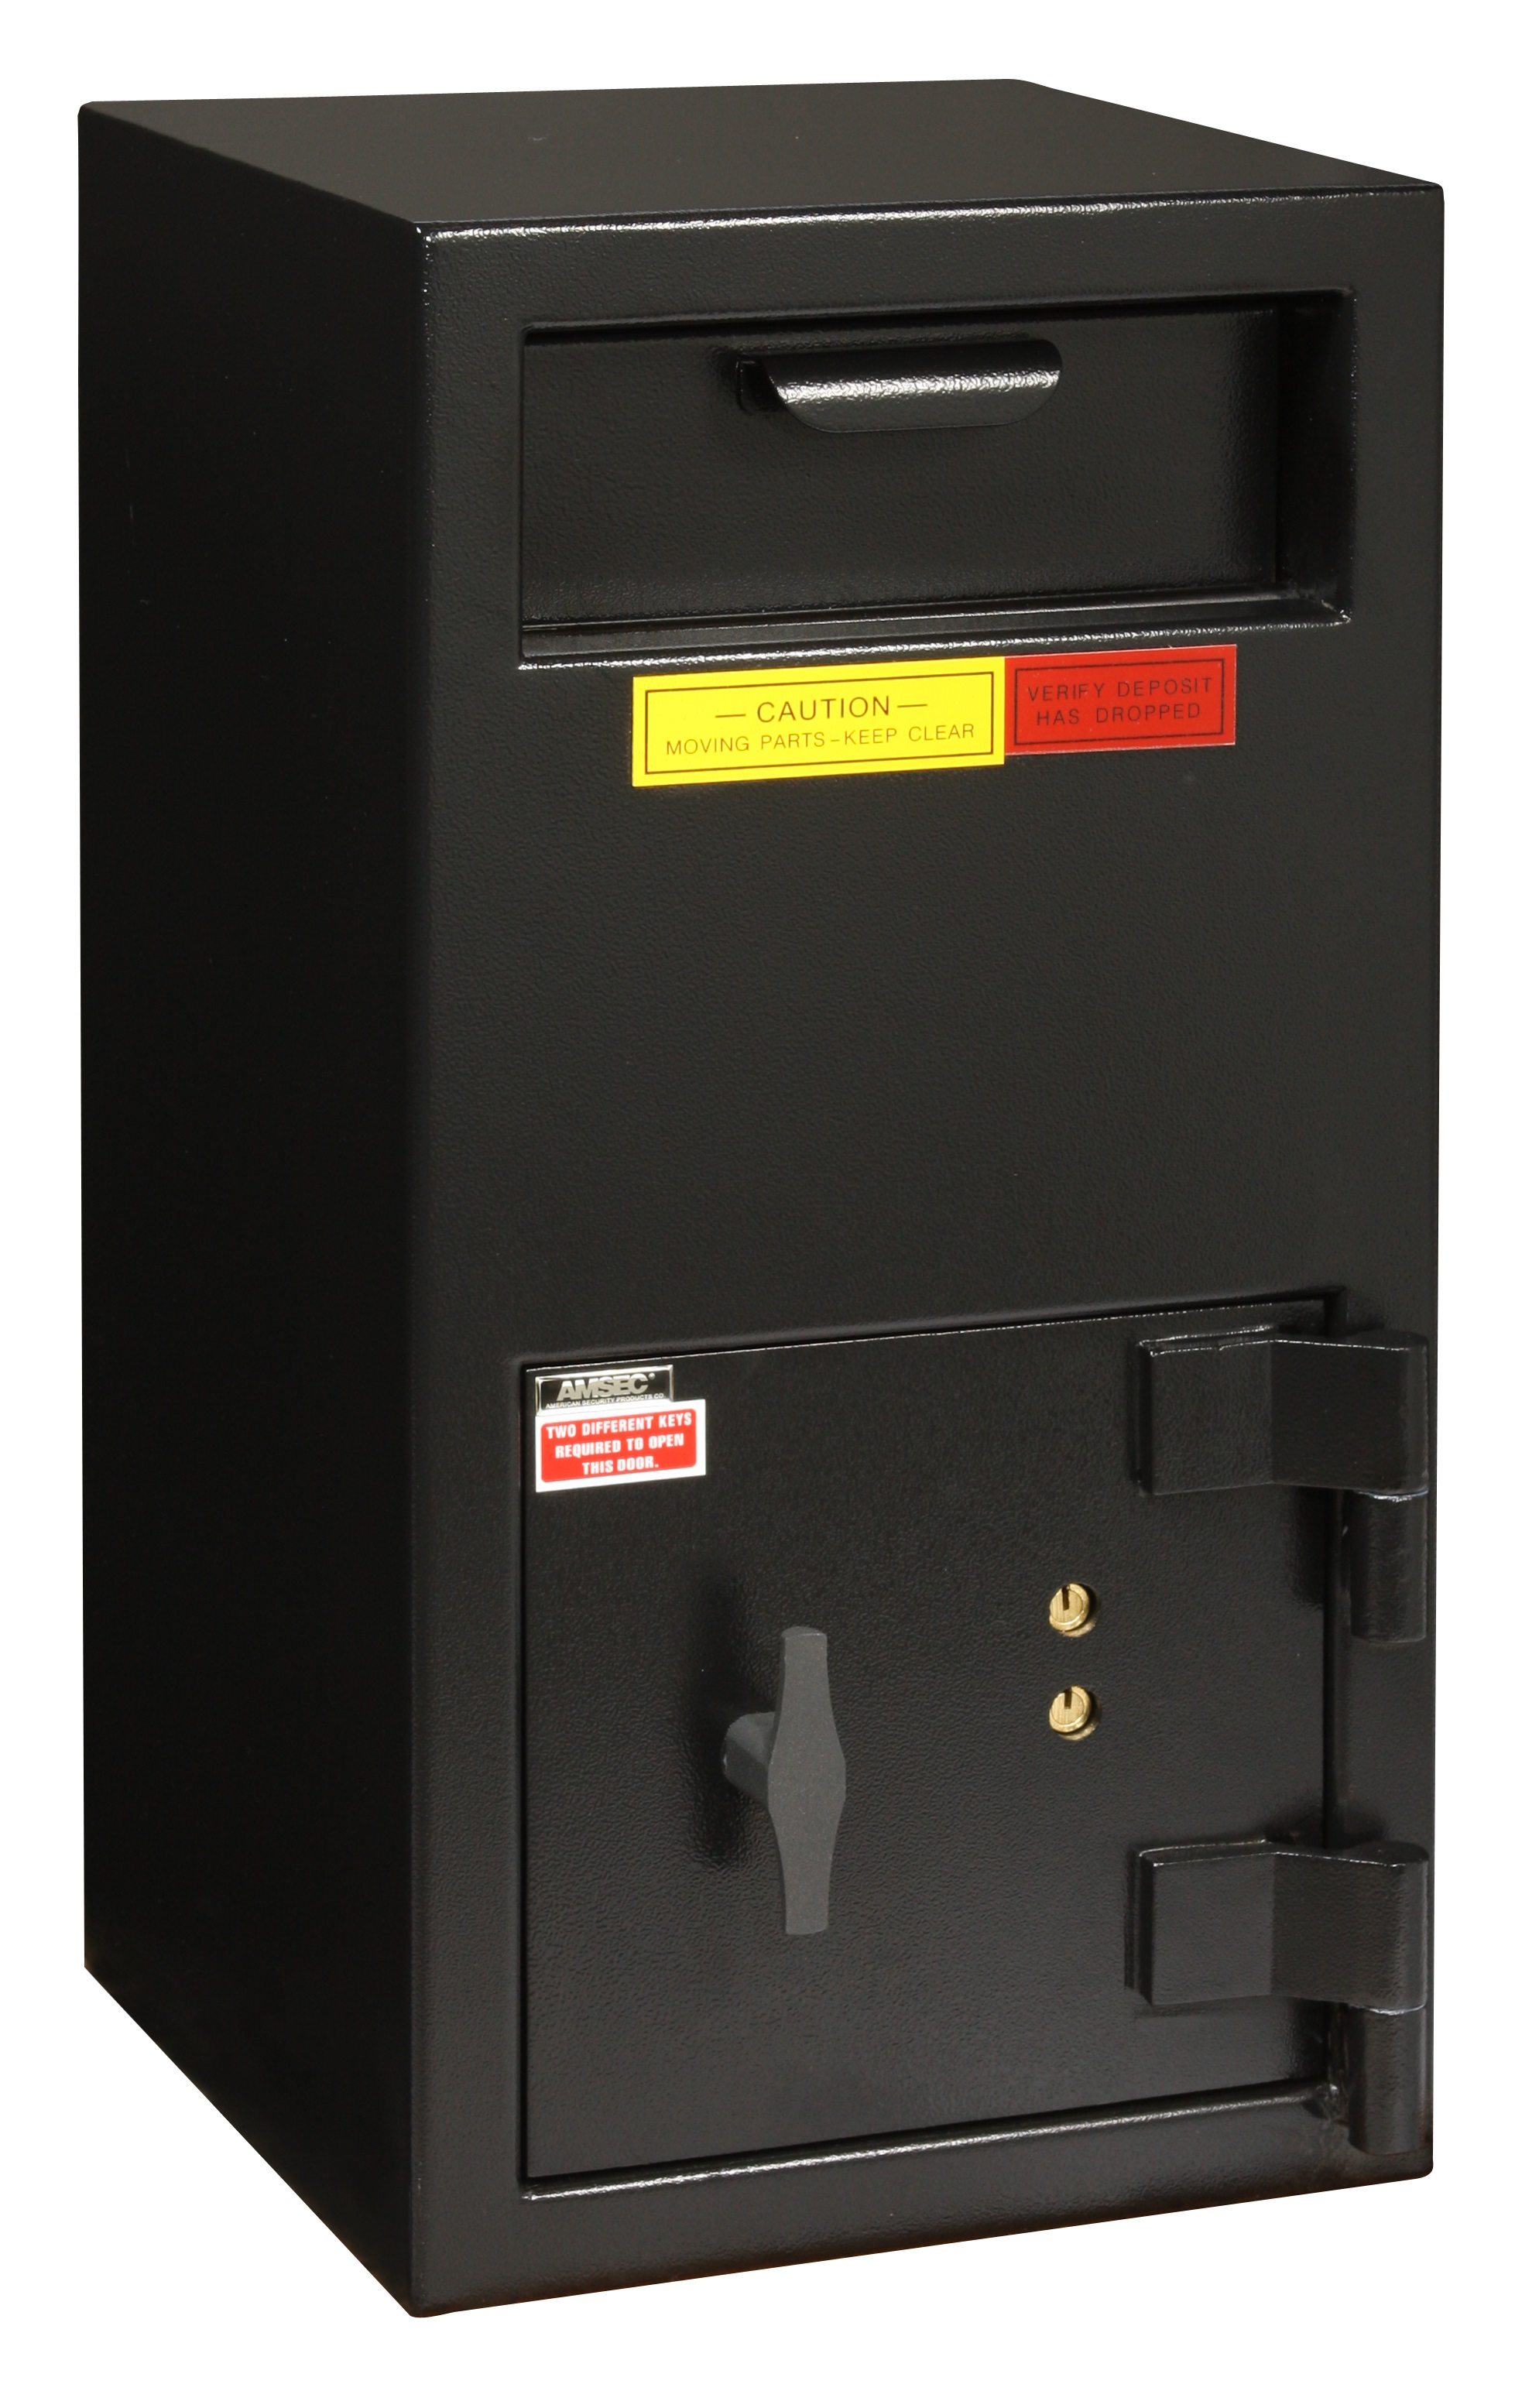 American security dsf2714k for Safe and secure products